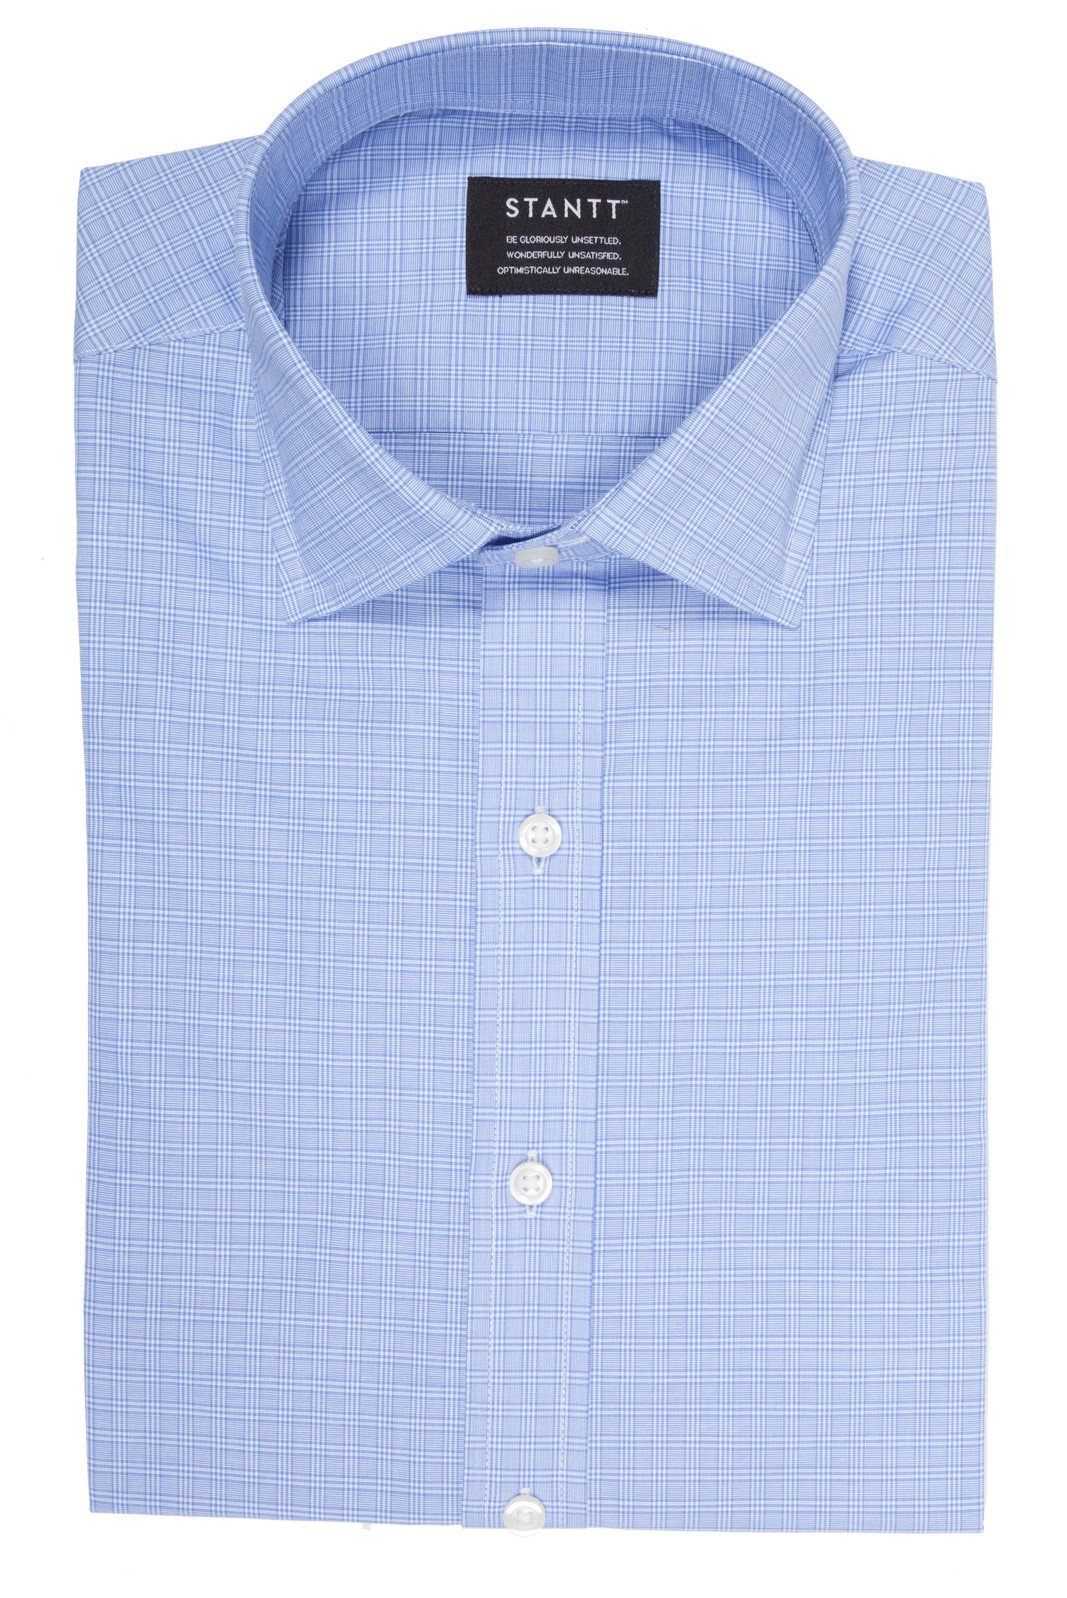 Light Blue Mini Raker Check: Modified-Spread Collar, Barrel Cuff